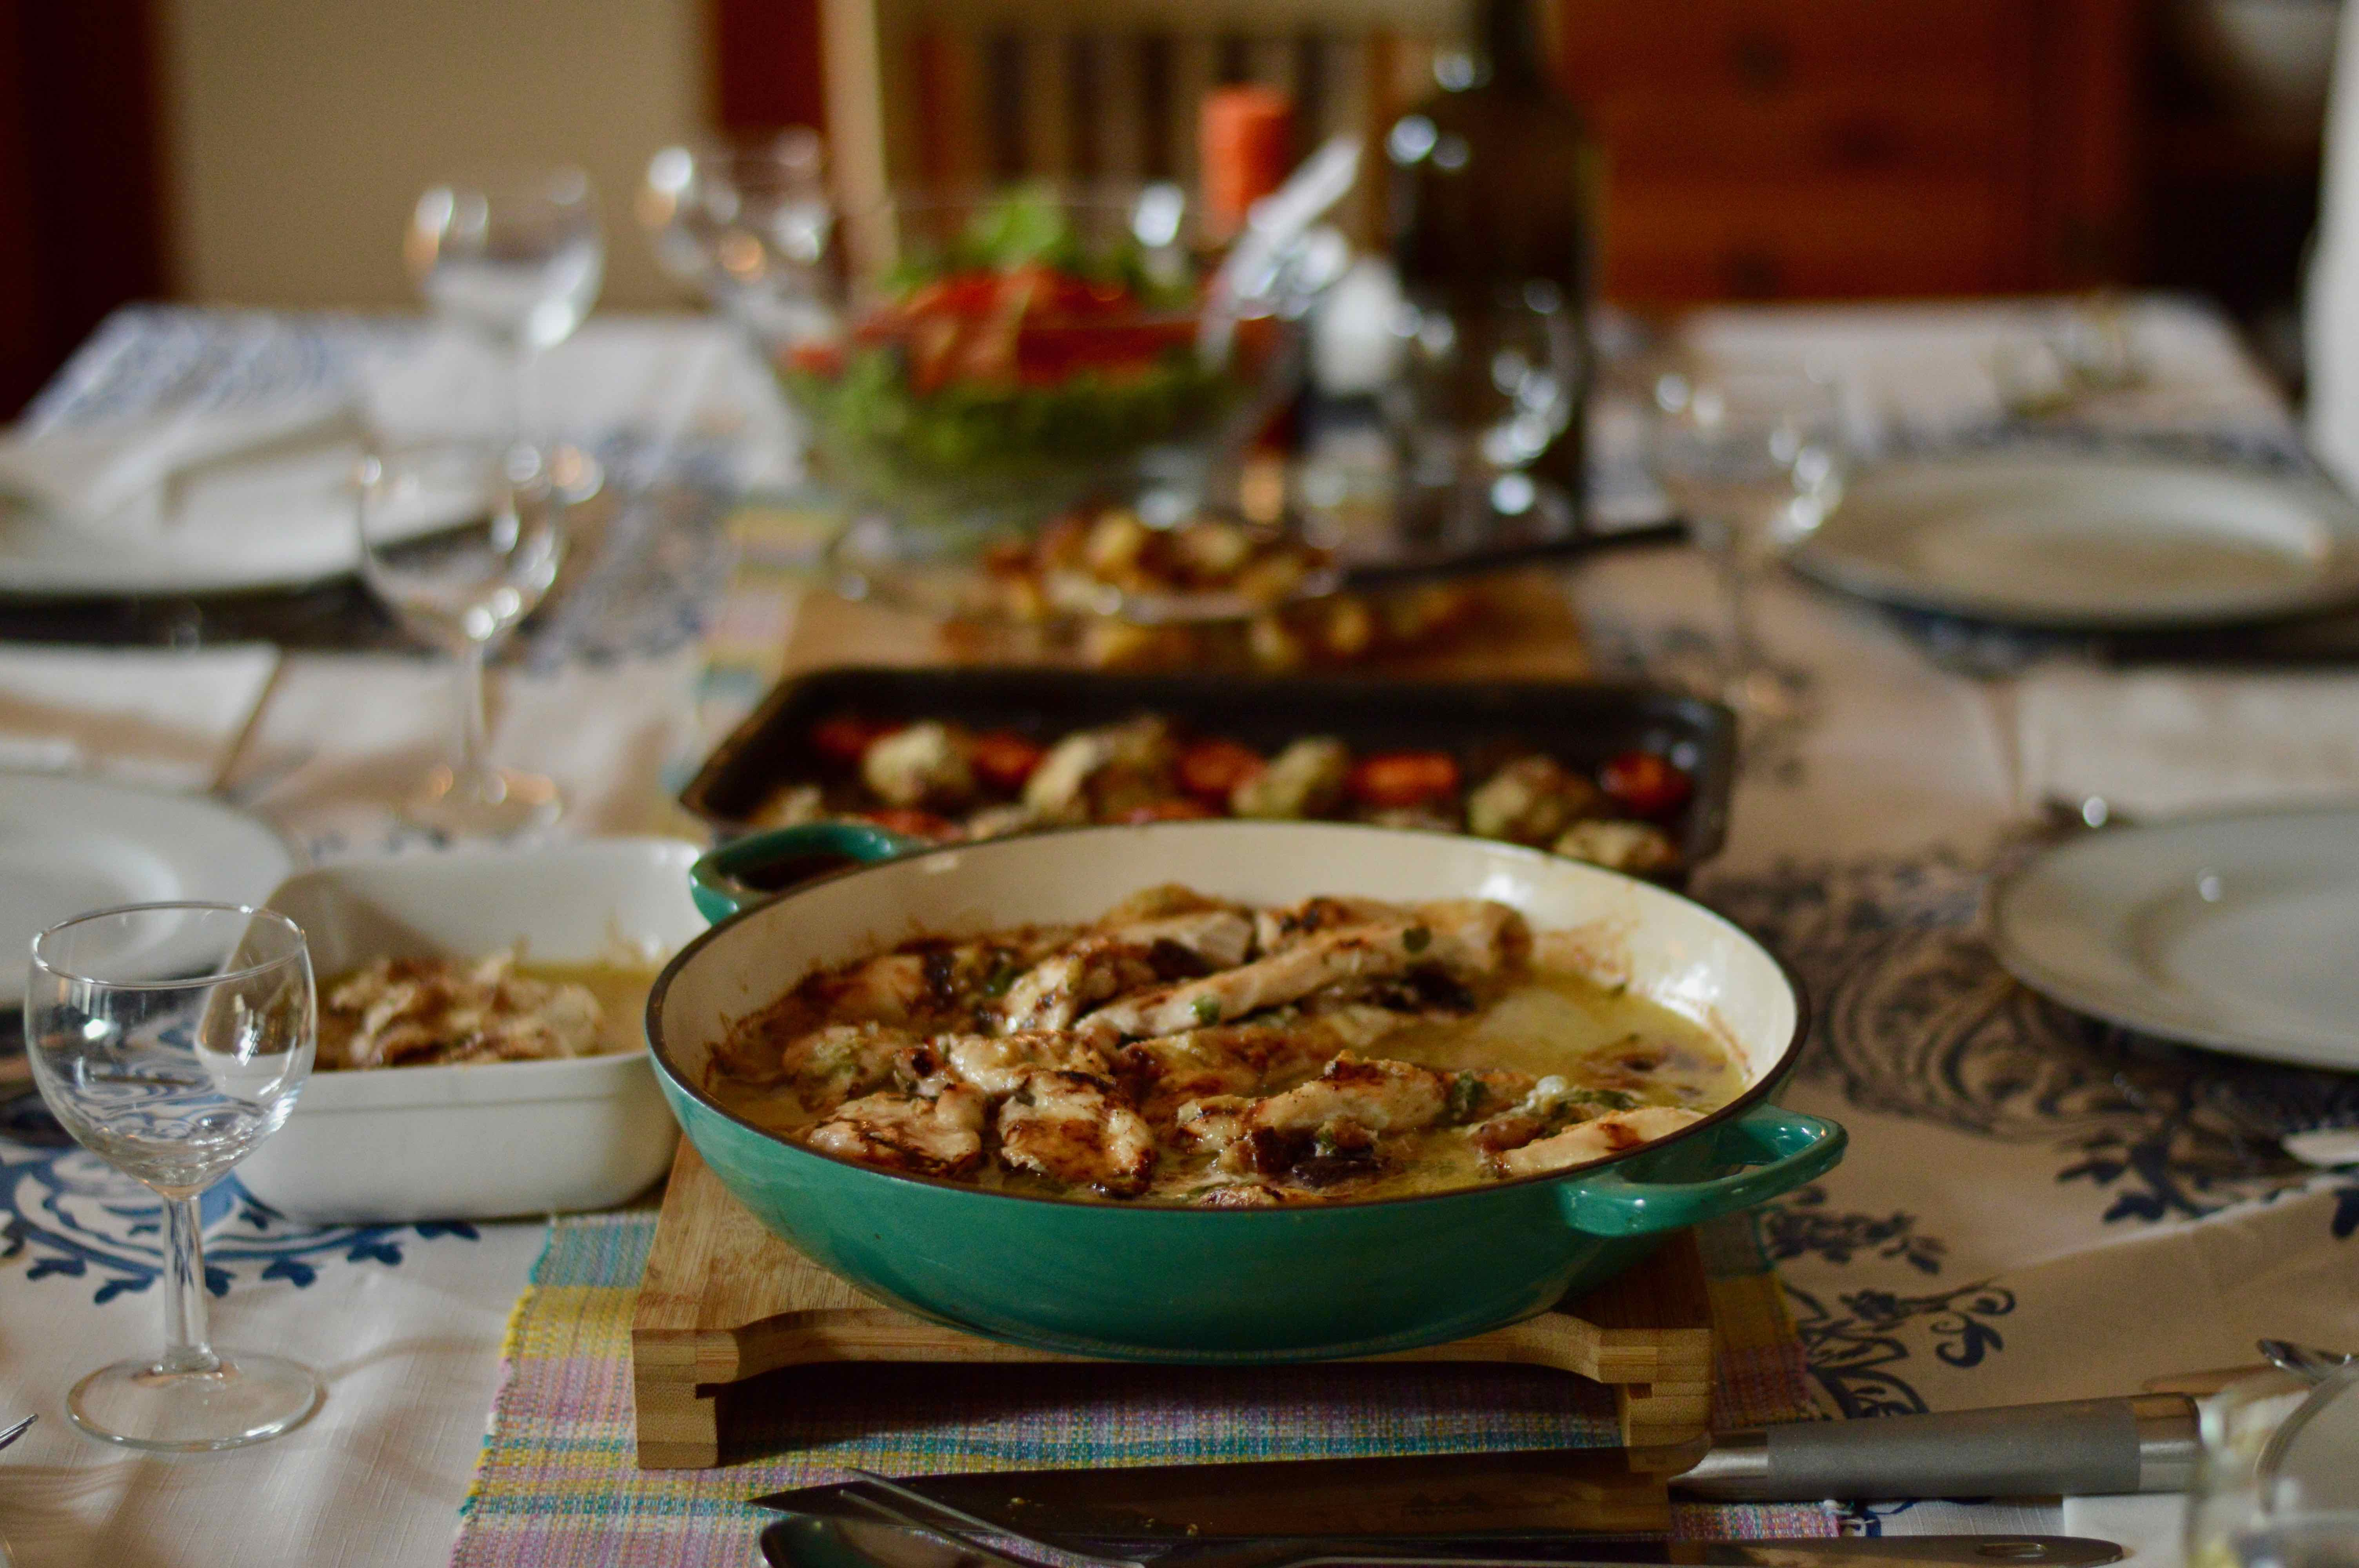 Final prepared meal (Chicken with Figs and Gorgonzola Cheese)